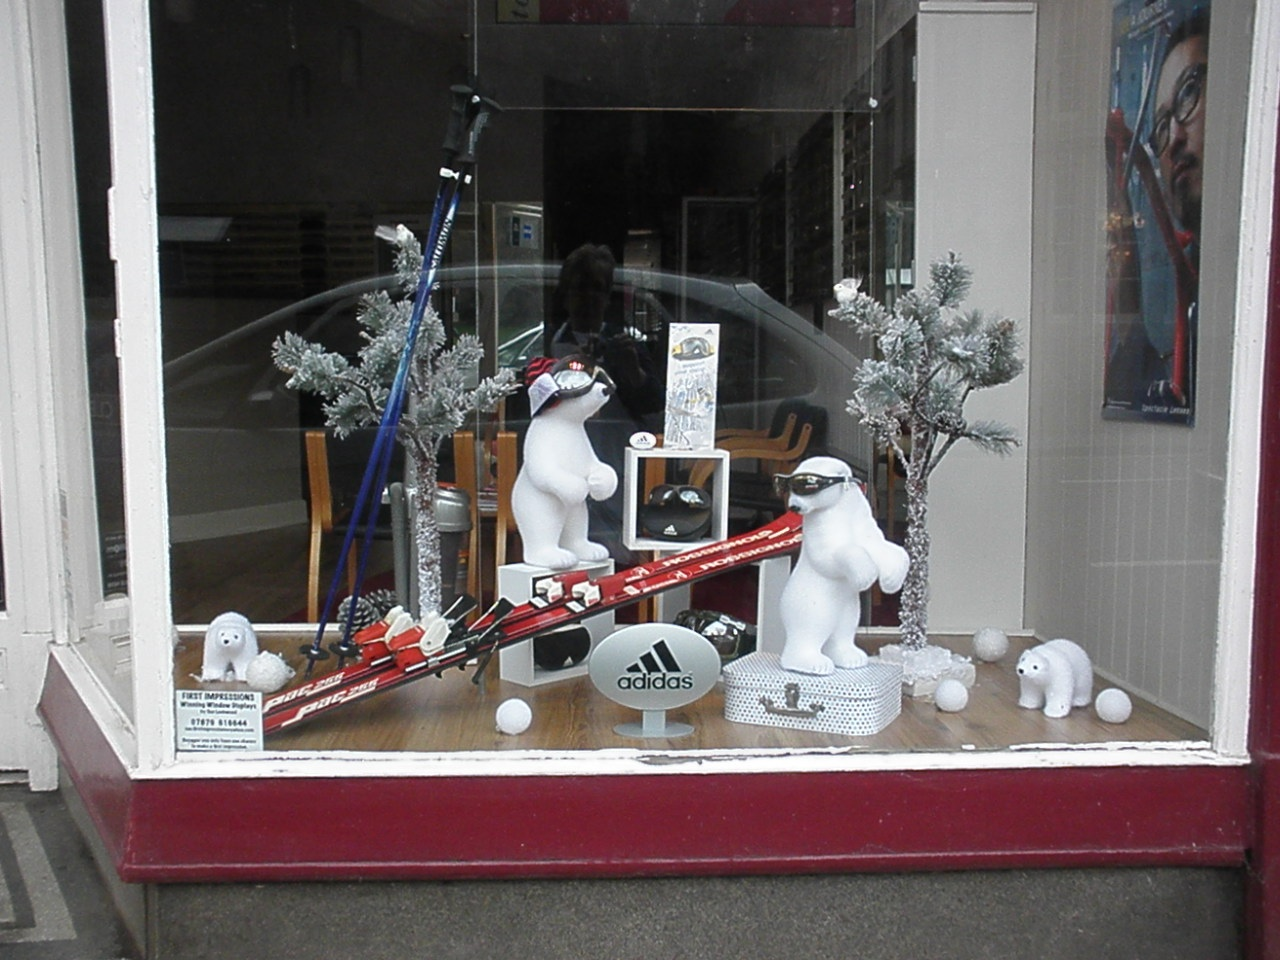 Two little polar bears are searching for the best snow in this window display because they want to ski in the New Year's Eve.